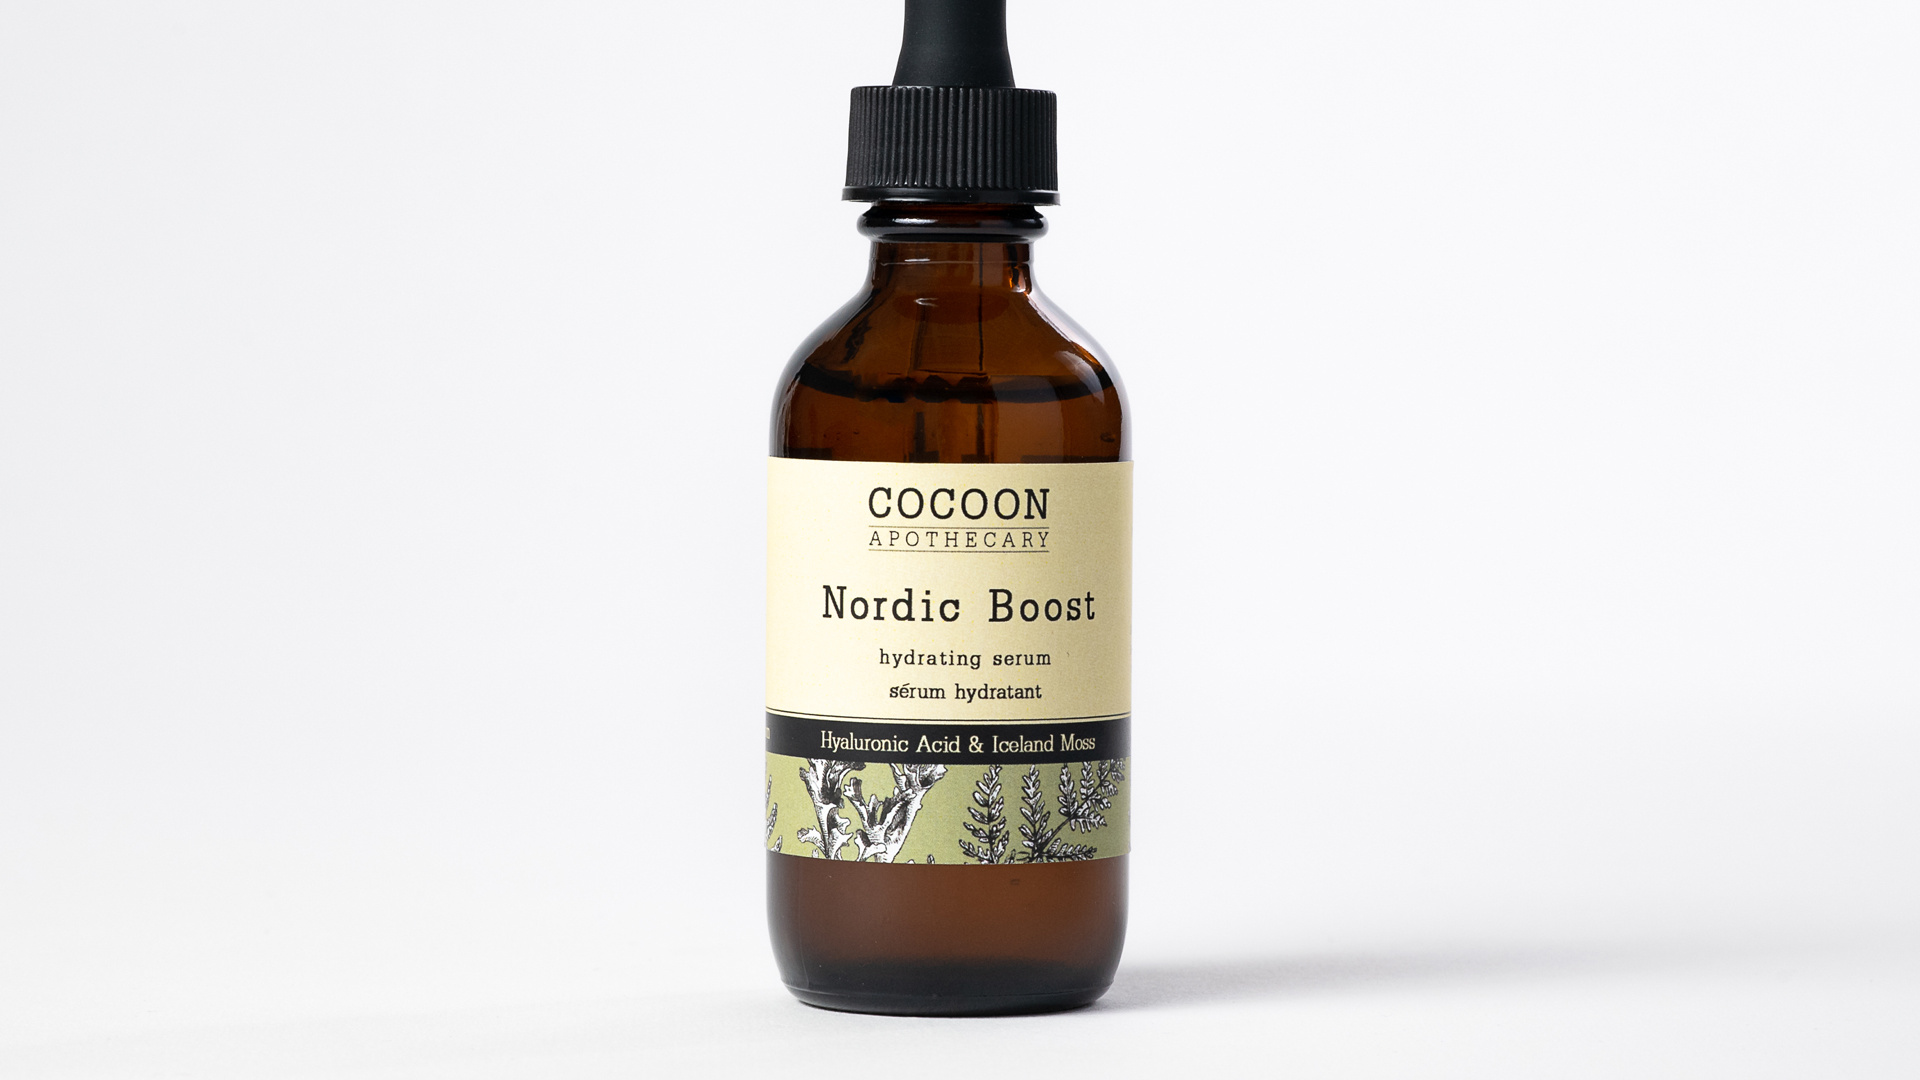 Cocoon Apothecary's Nordic Boost Hydrating Serum